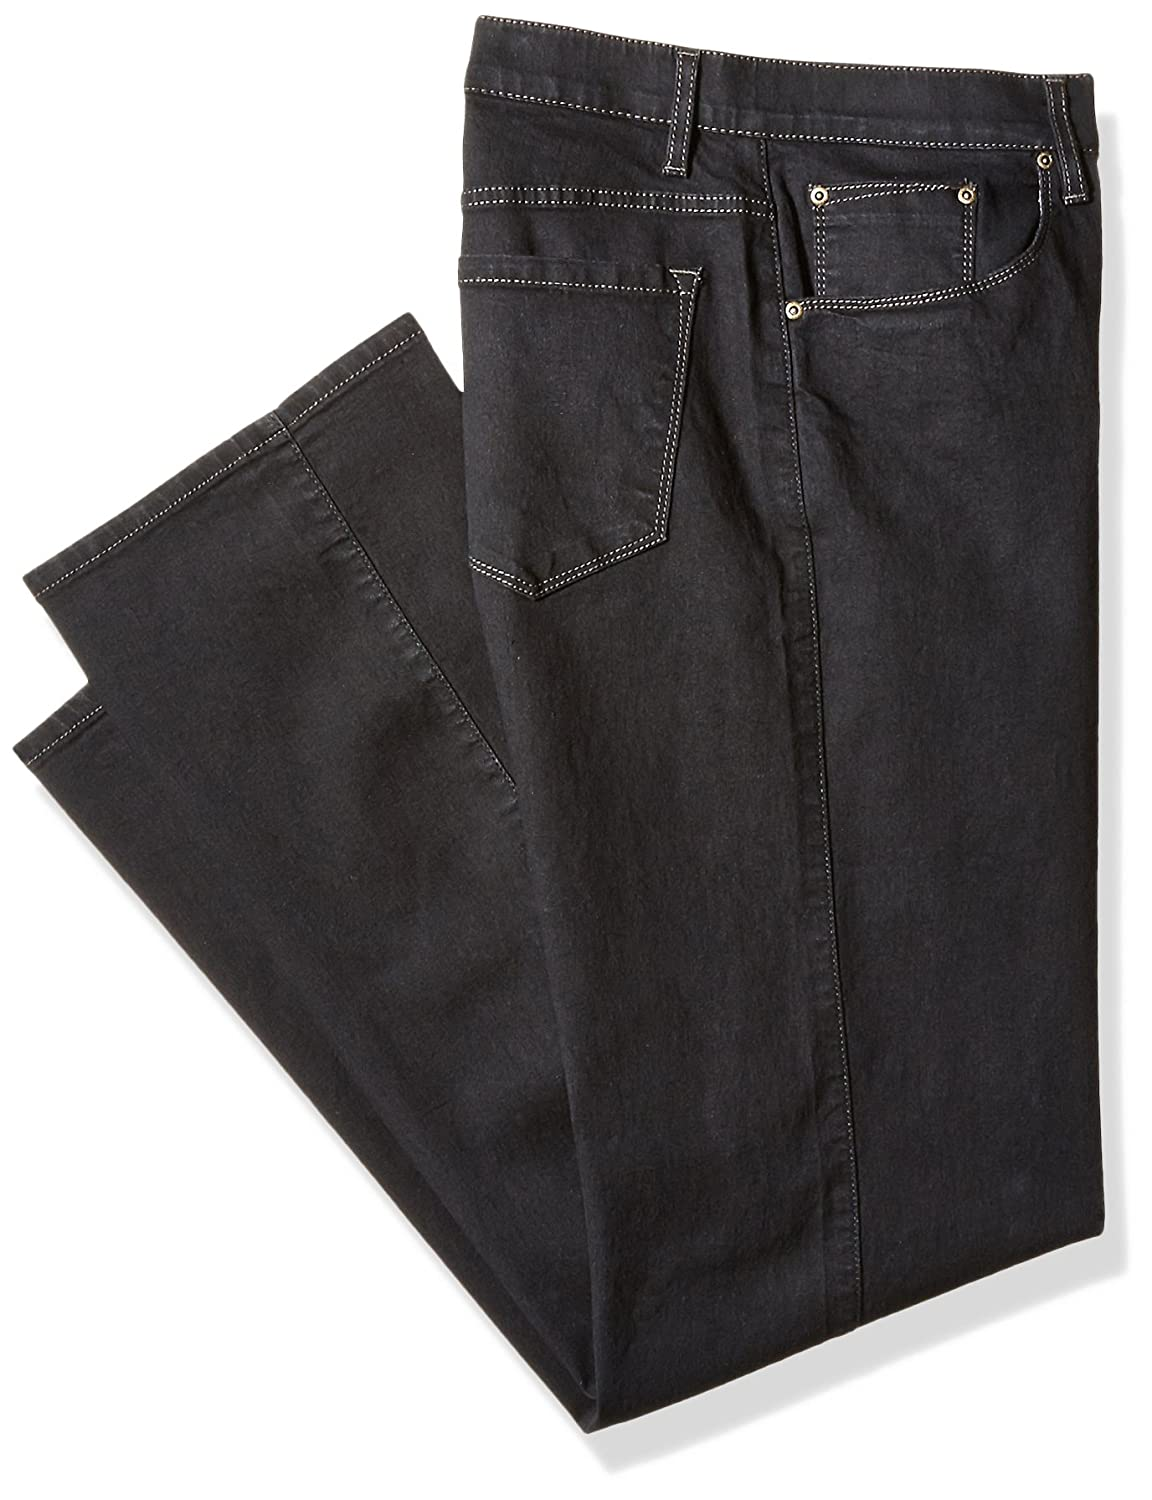 Savane Men's Big and Tall Active-Flex Black Rinse Stretch-Denim Jean Savane Men' s Bottoms SWBS60A3